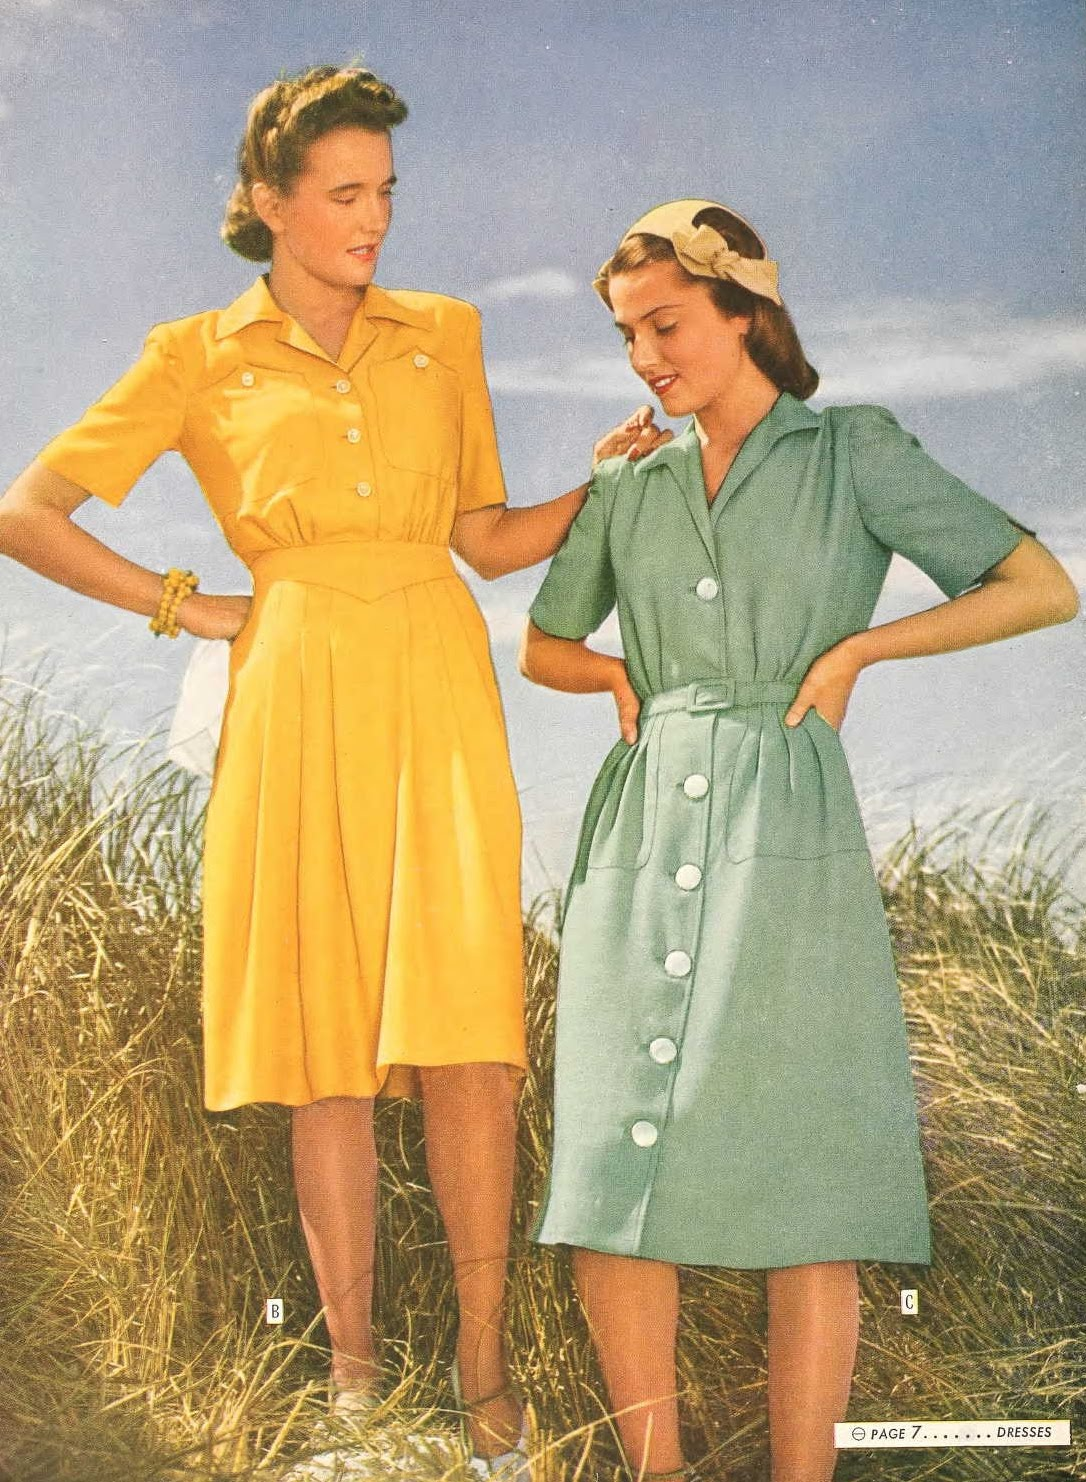 1940s Style Dresses Fashion Clothing: Snapped Garters: 1944 Fashions IN COLOUR